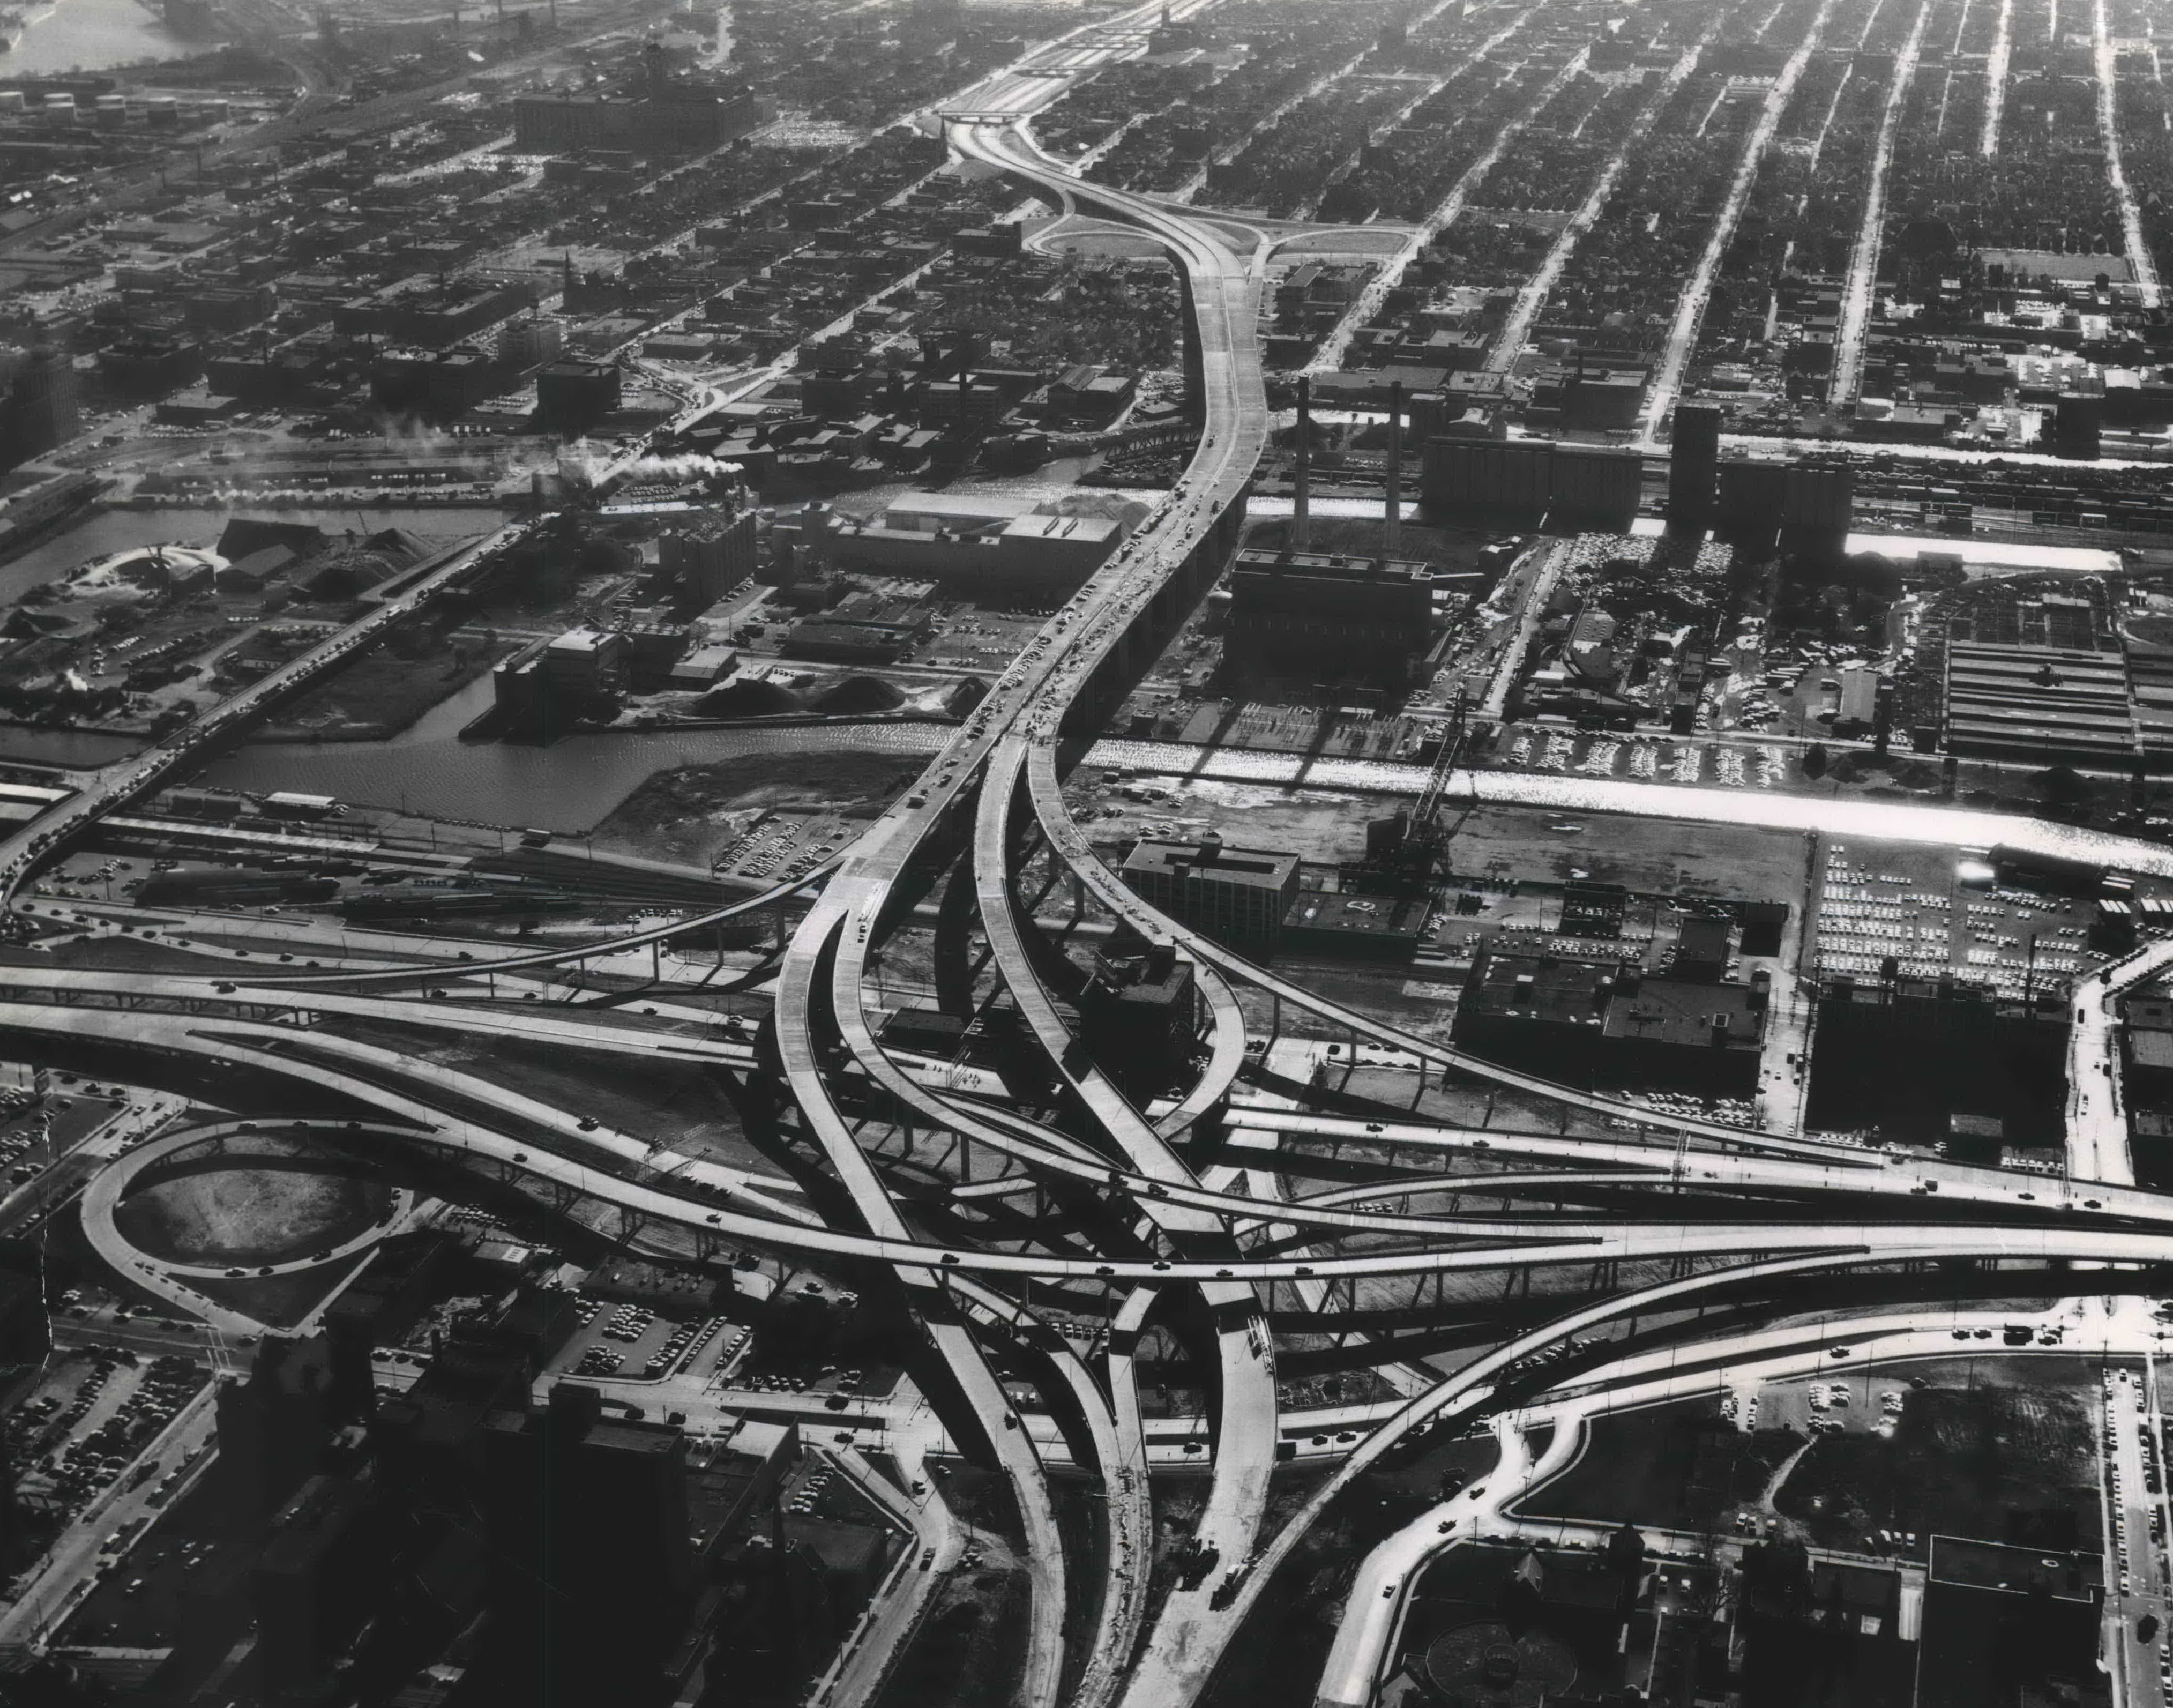 The new North-South Freeway snakes through Milwaukee's south side and curves onto the bridge across the Menomonee Valley before entering the Marquette Interchange. The East-West freeway runs left to right. This photo was published in the Milwaukee Sentinel on Dec. 23, 1968, the day the Marquette Interchange first opened.